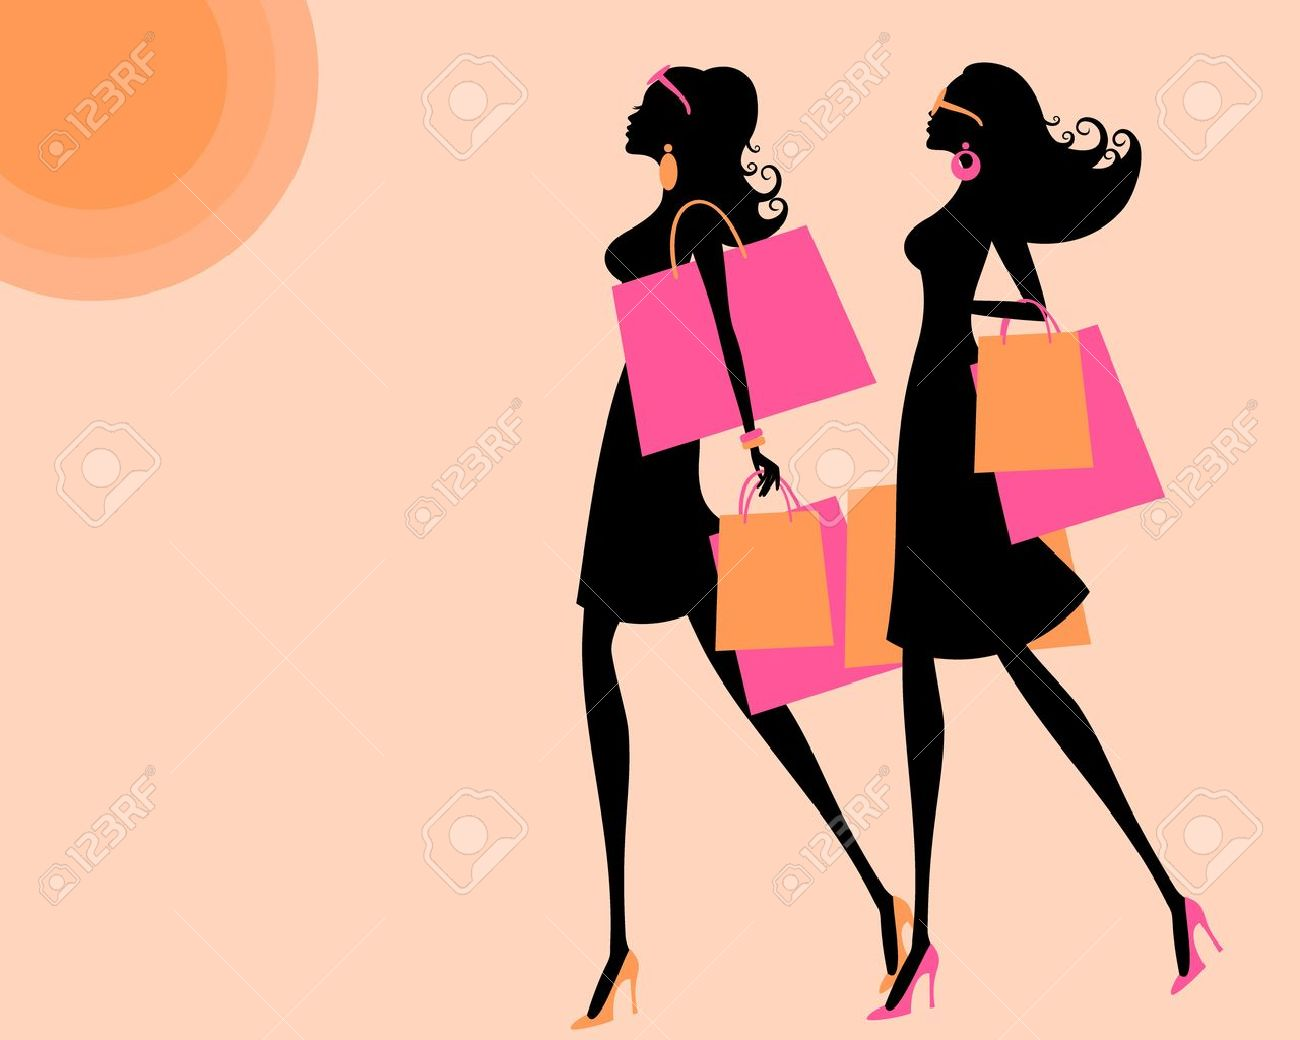 Woman Shopping Clipart young women shopping on a